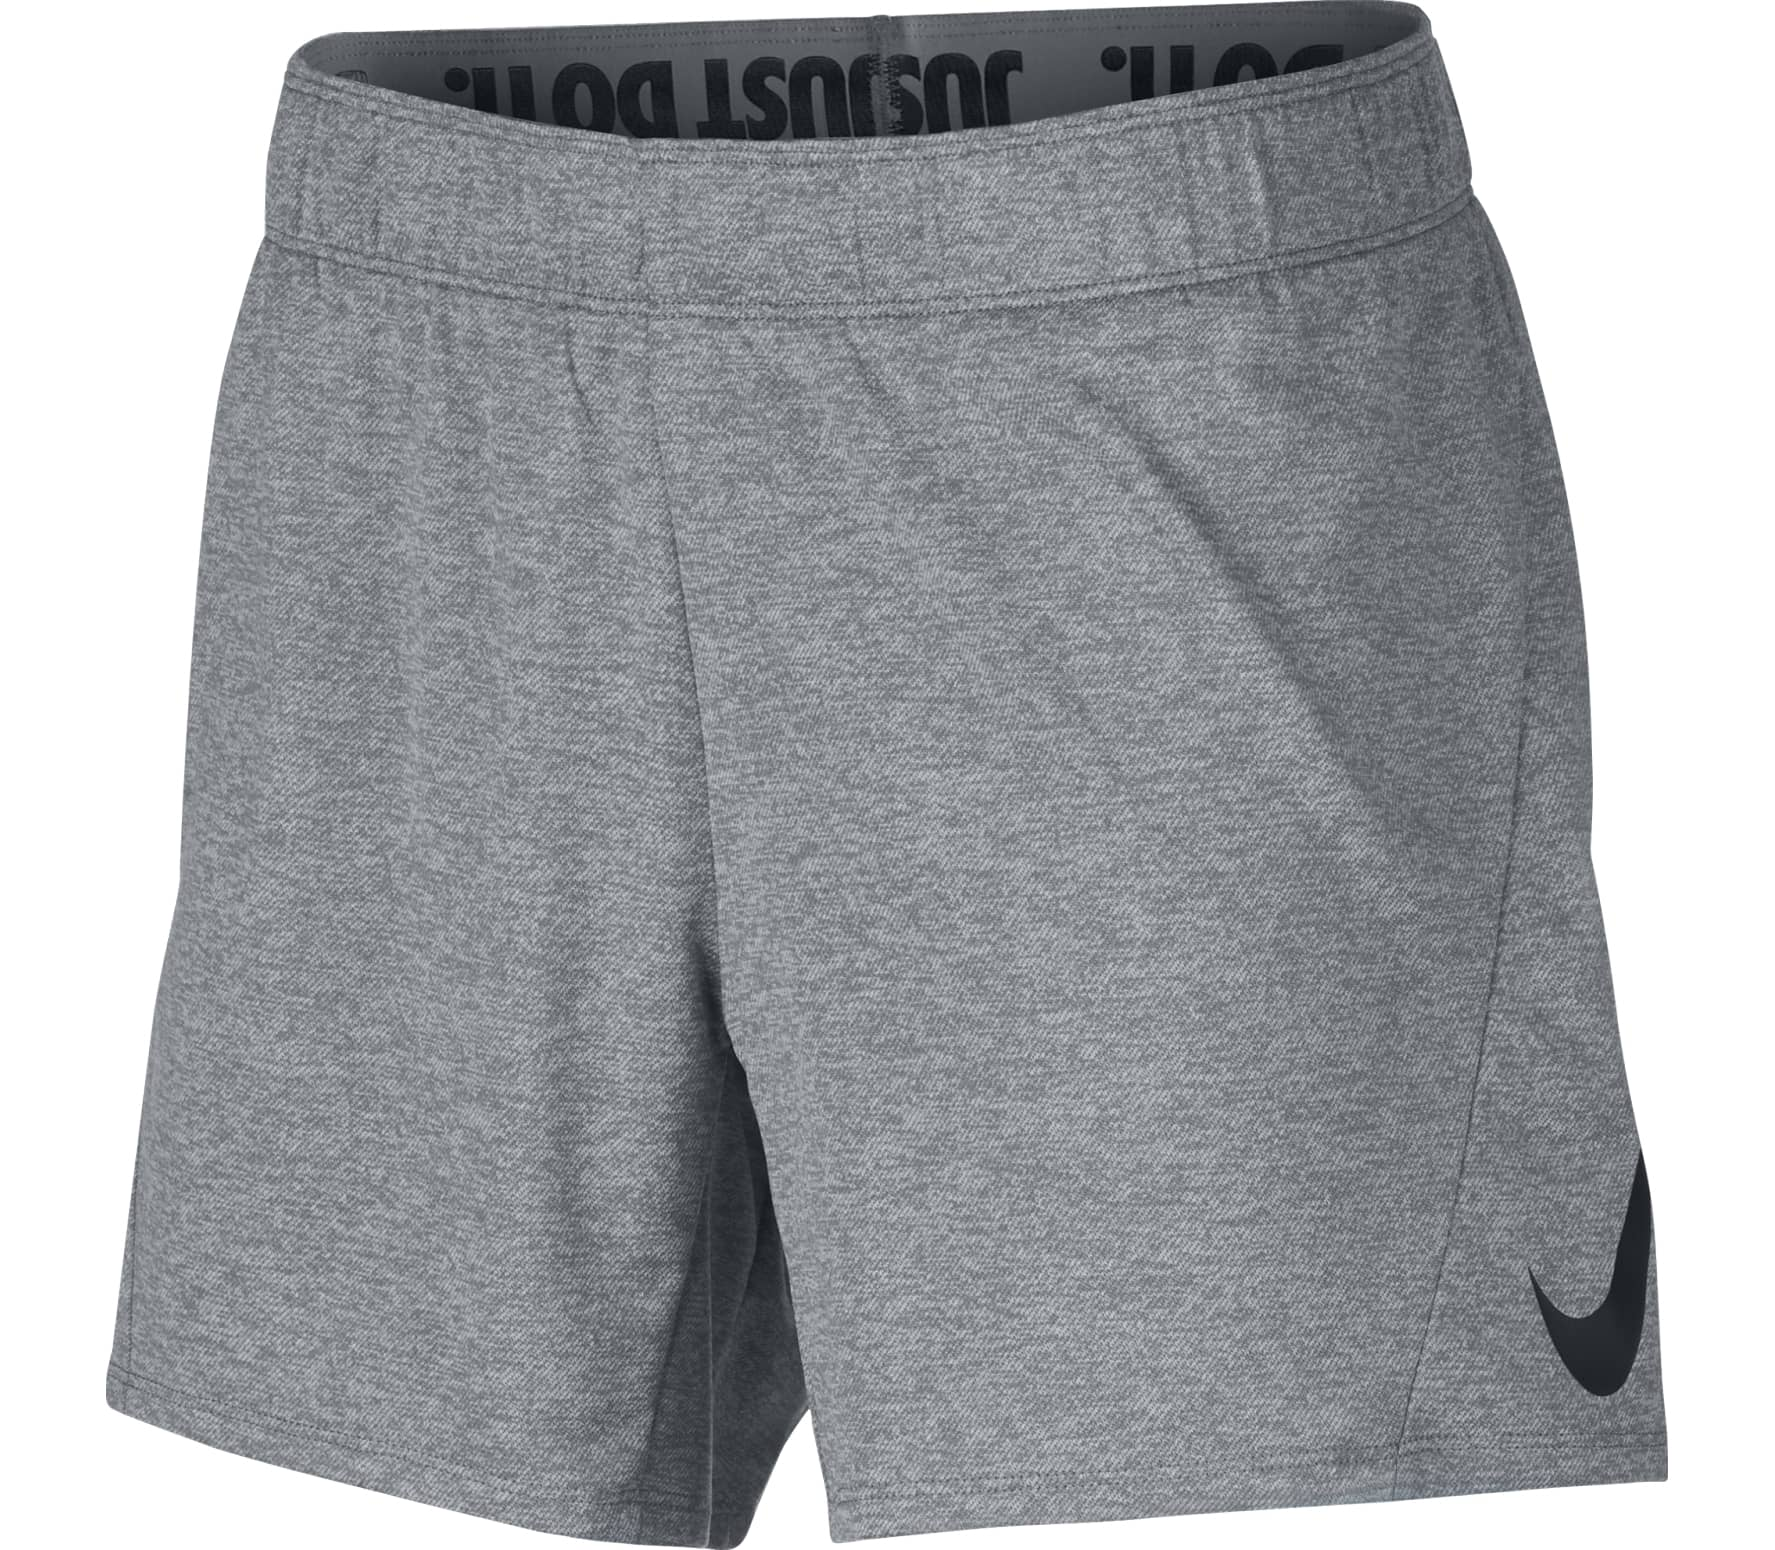 1d308ad38a Nike - Dry Swoosh women s training shorts (grey) - buy it at the ...